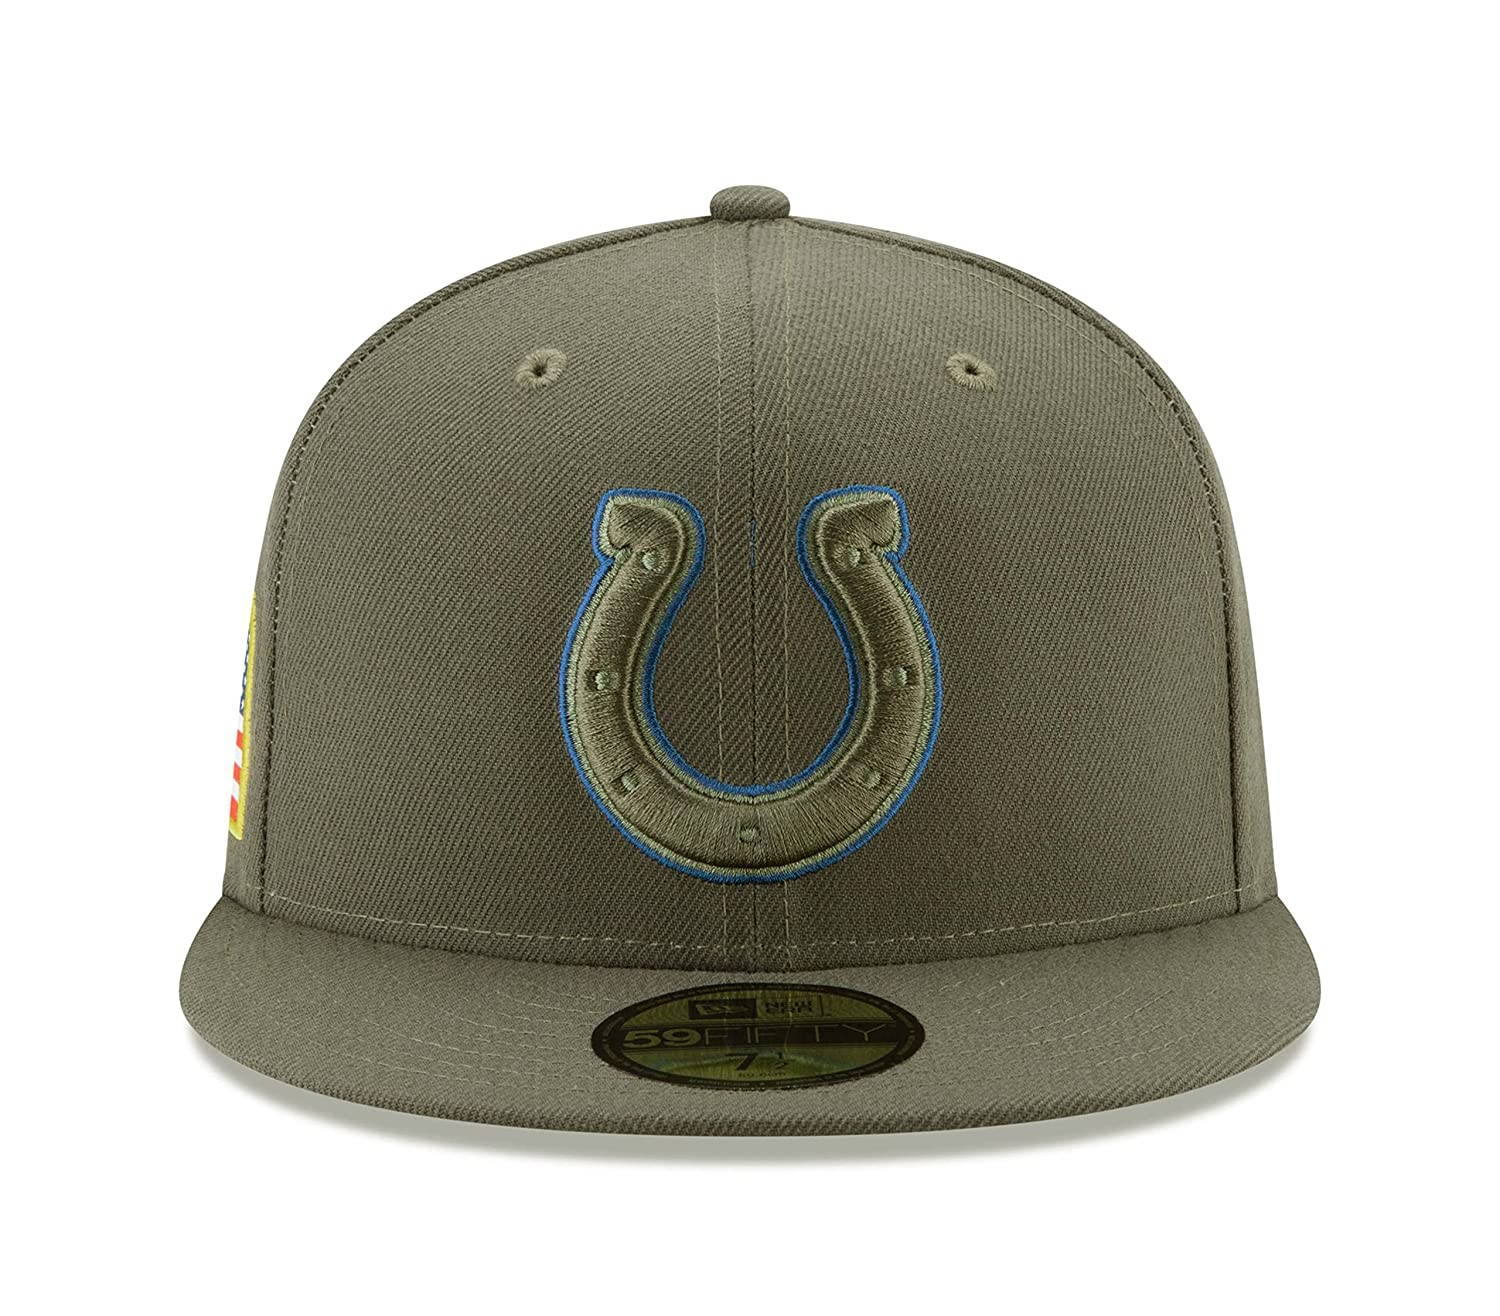 New Era 59Fifty Hat Indianapolis Colts NFL On-Field Salute to Service Fitted  Cap Green at Amazon Men s Clothing store  b6be92e7d5d